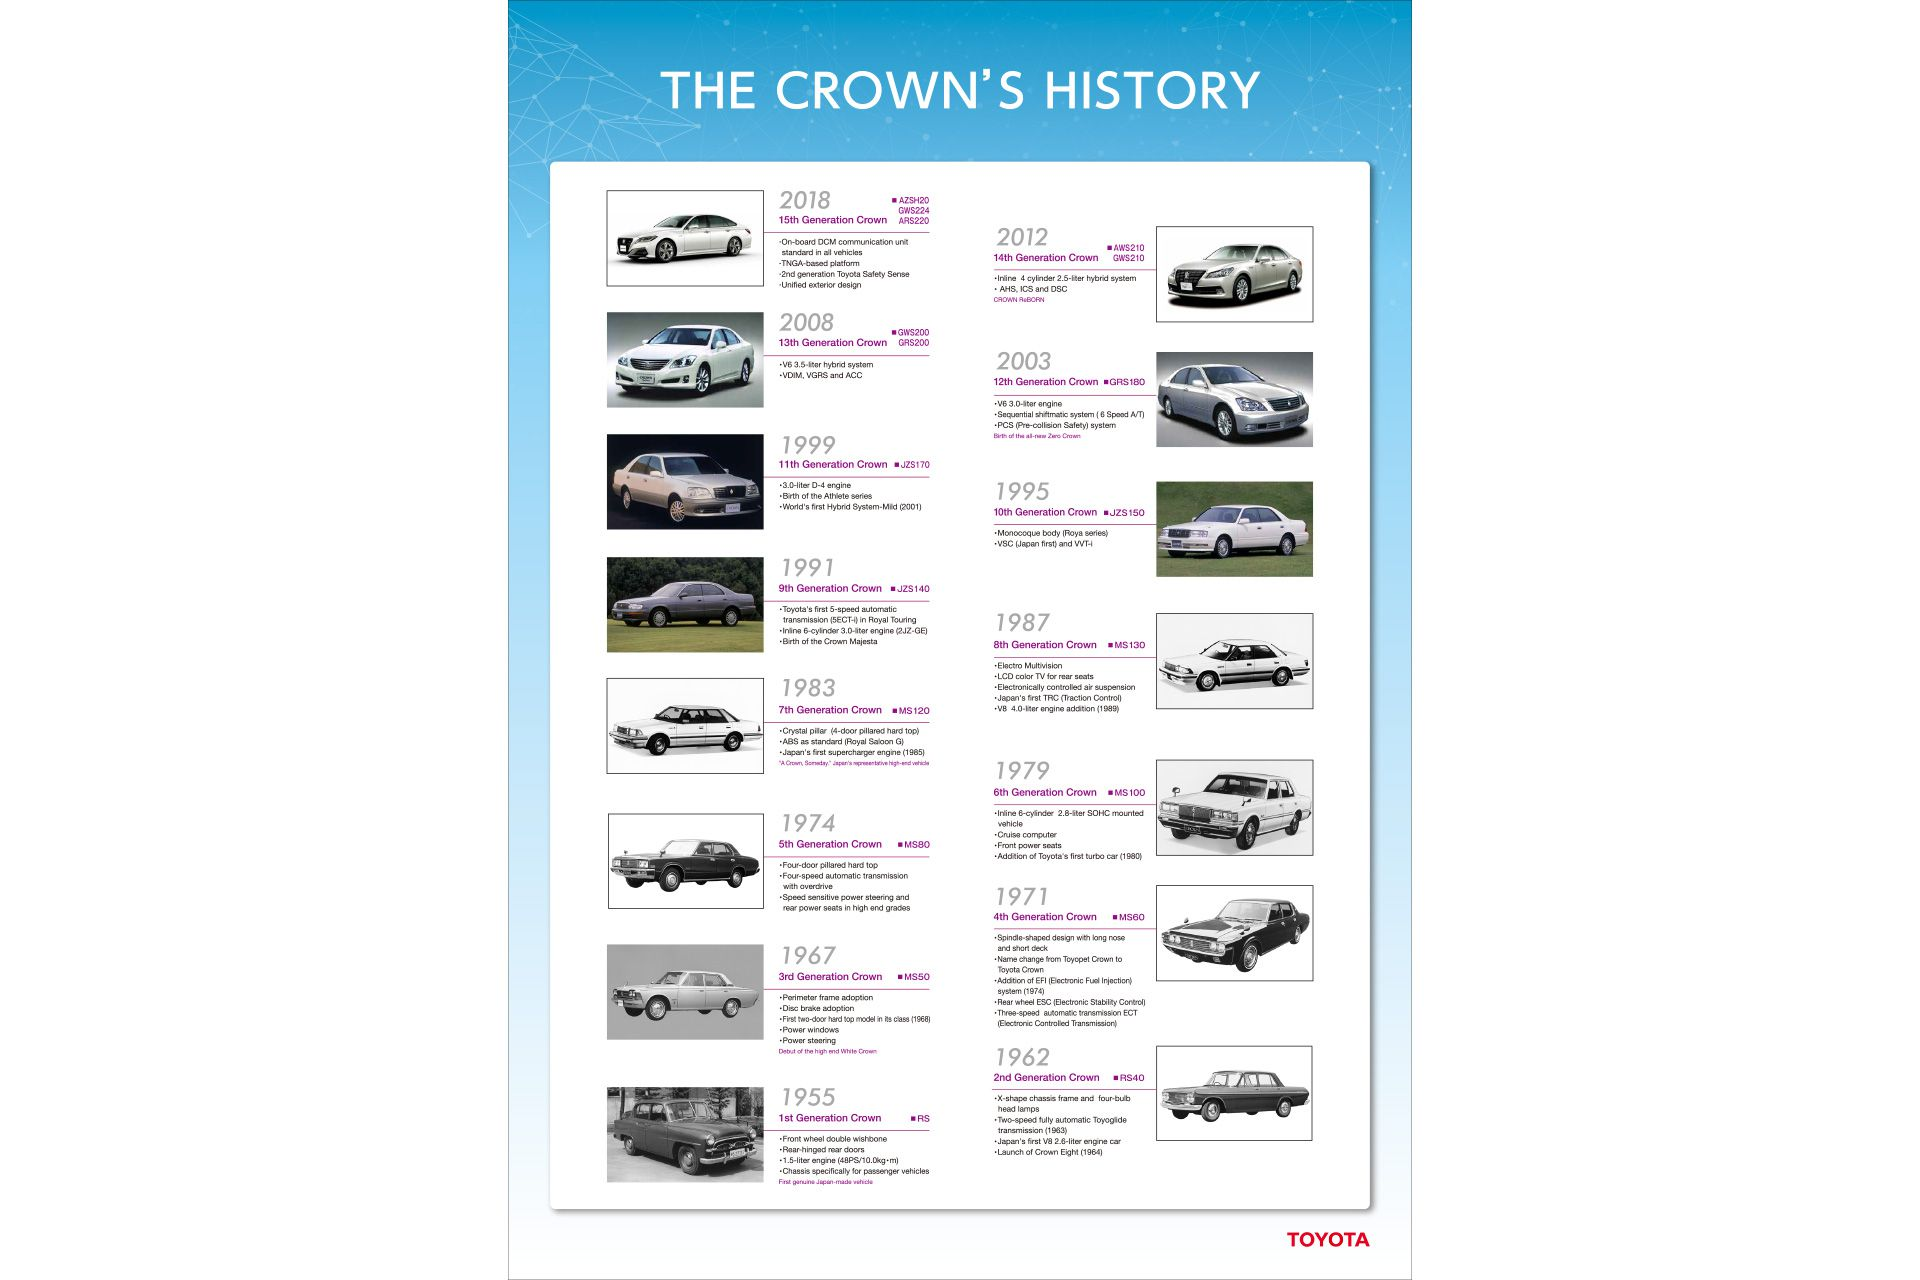 THE CROWN'S HISTORY